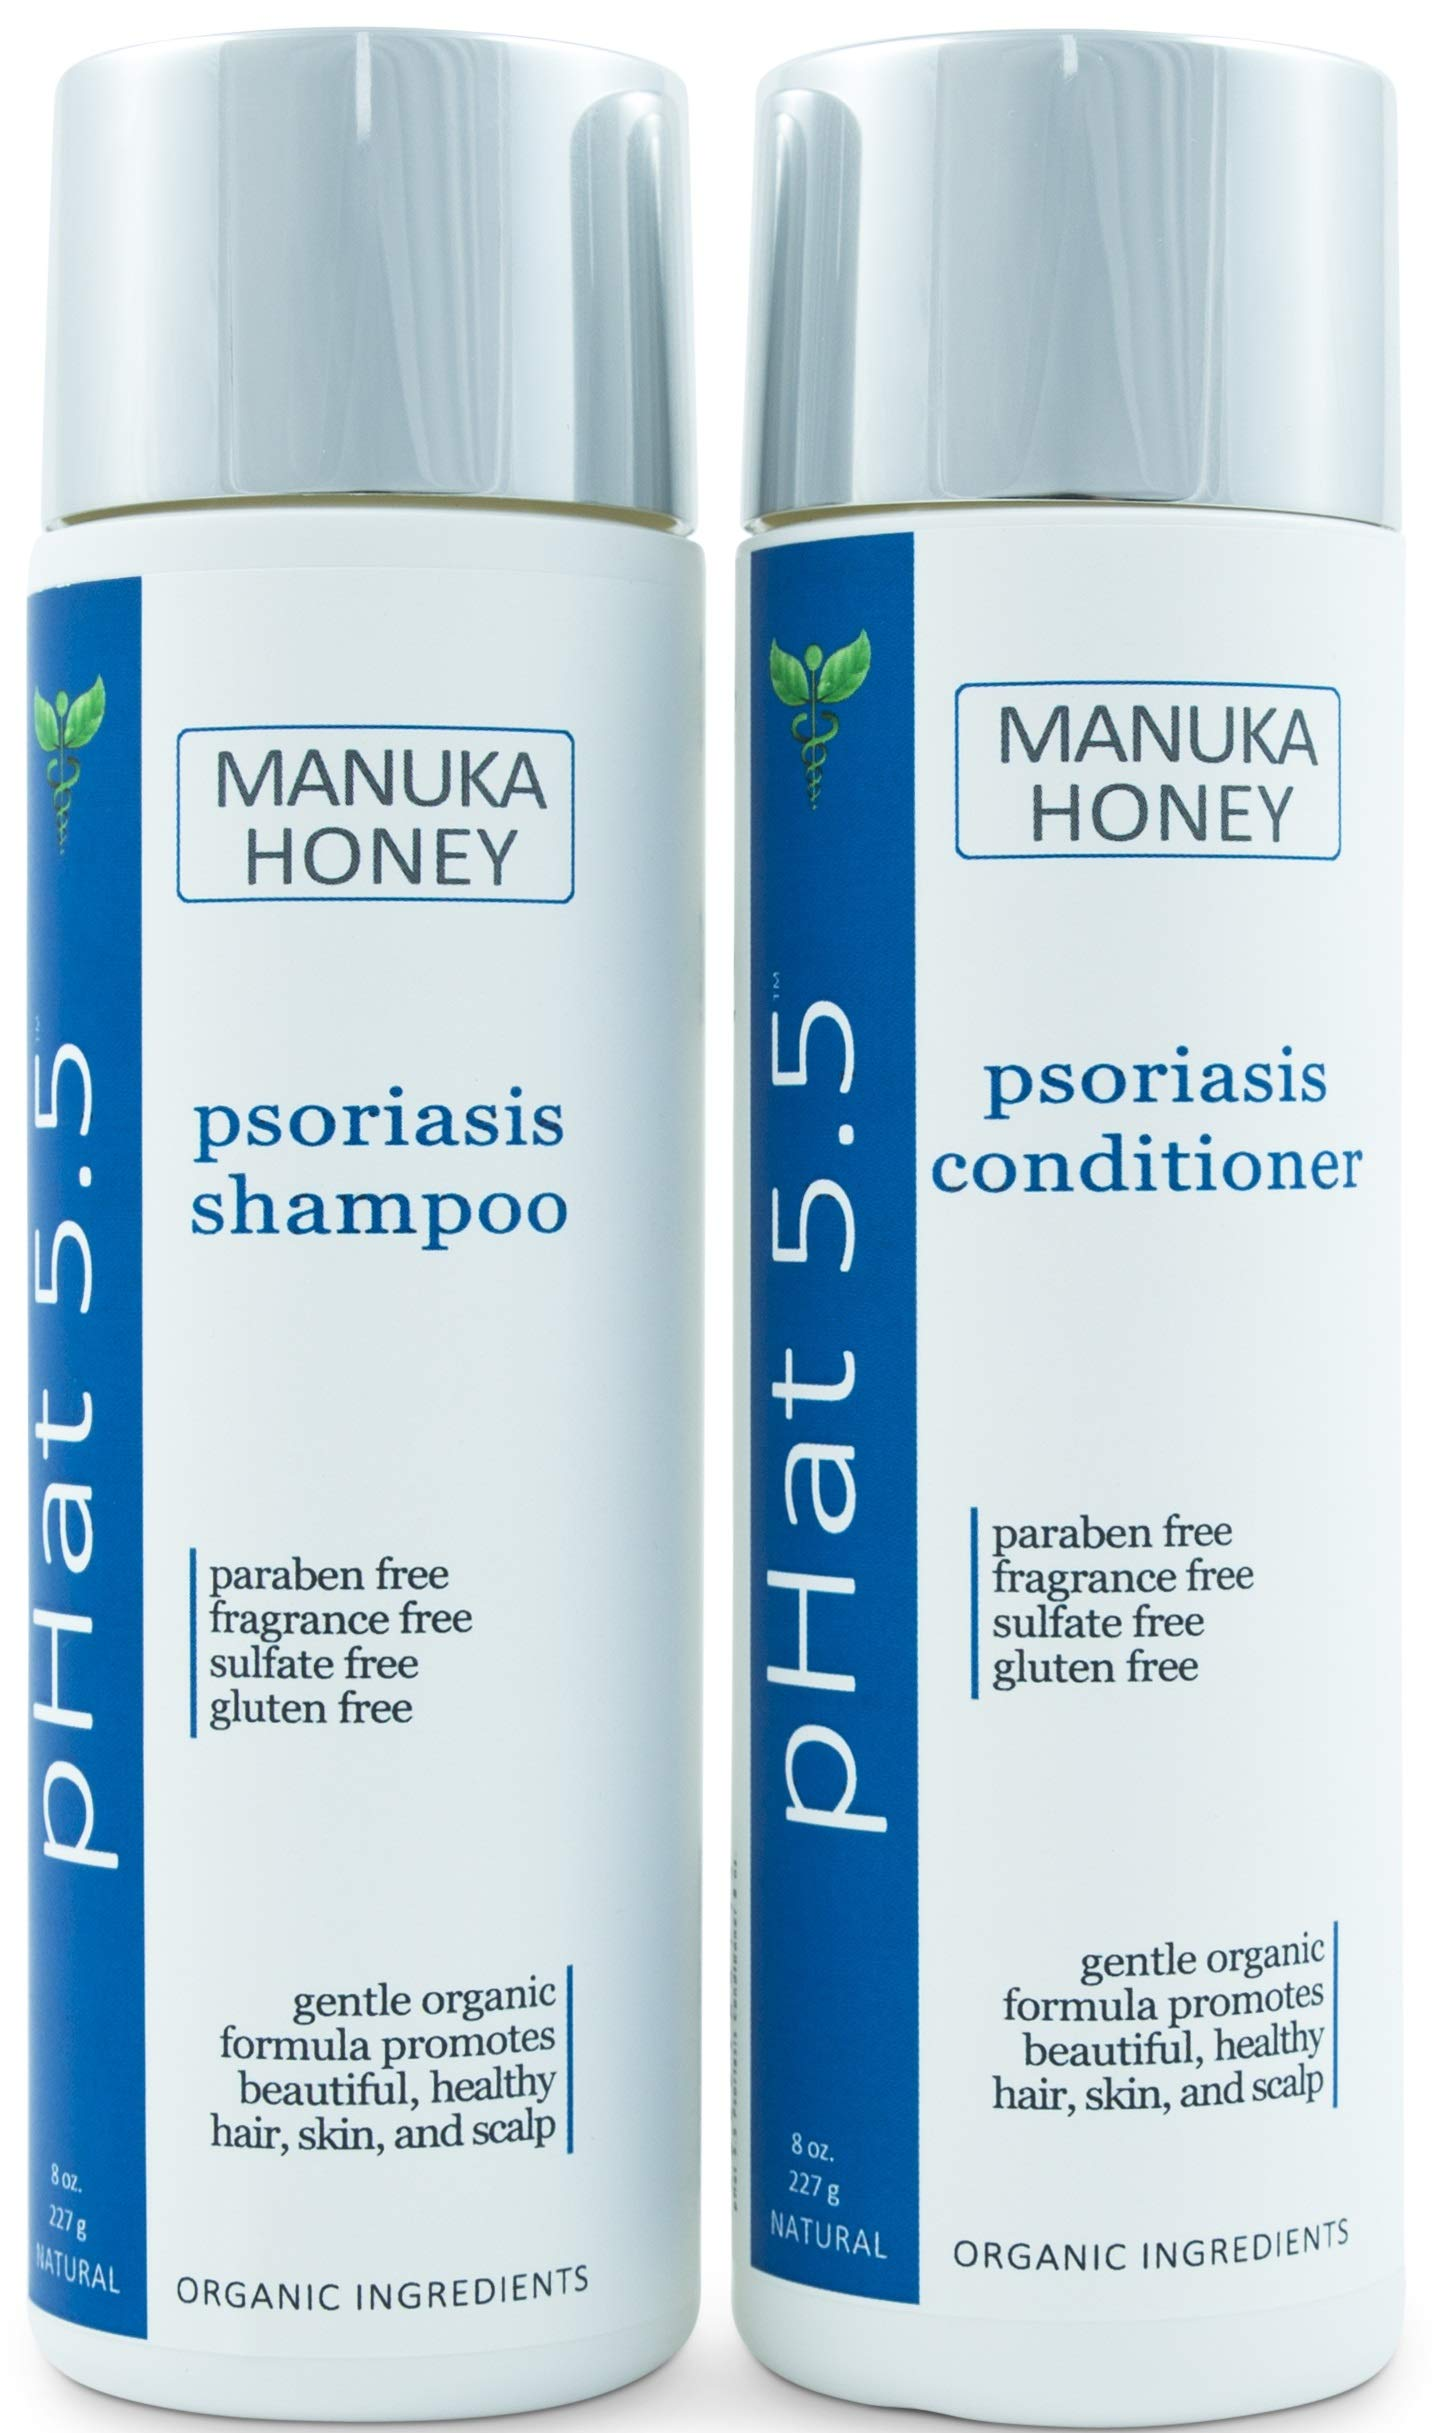 Psoriasis Shampoo and Conditioner Set for Dry and Itchy Scalp Treatment - Organic and Natural Formula - Gentle for Sensitive Skin with Manuka Honey and Aloe Vera - Sulfate and Paraben Free (8 oz) by pHat 5.5